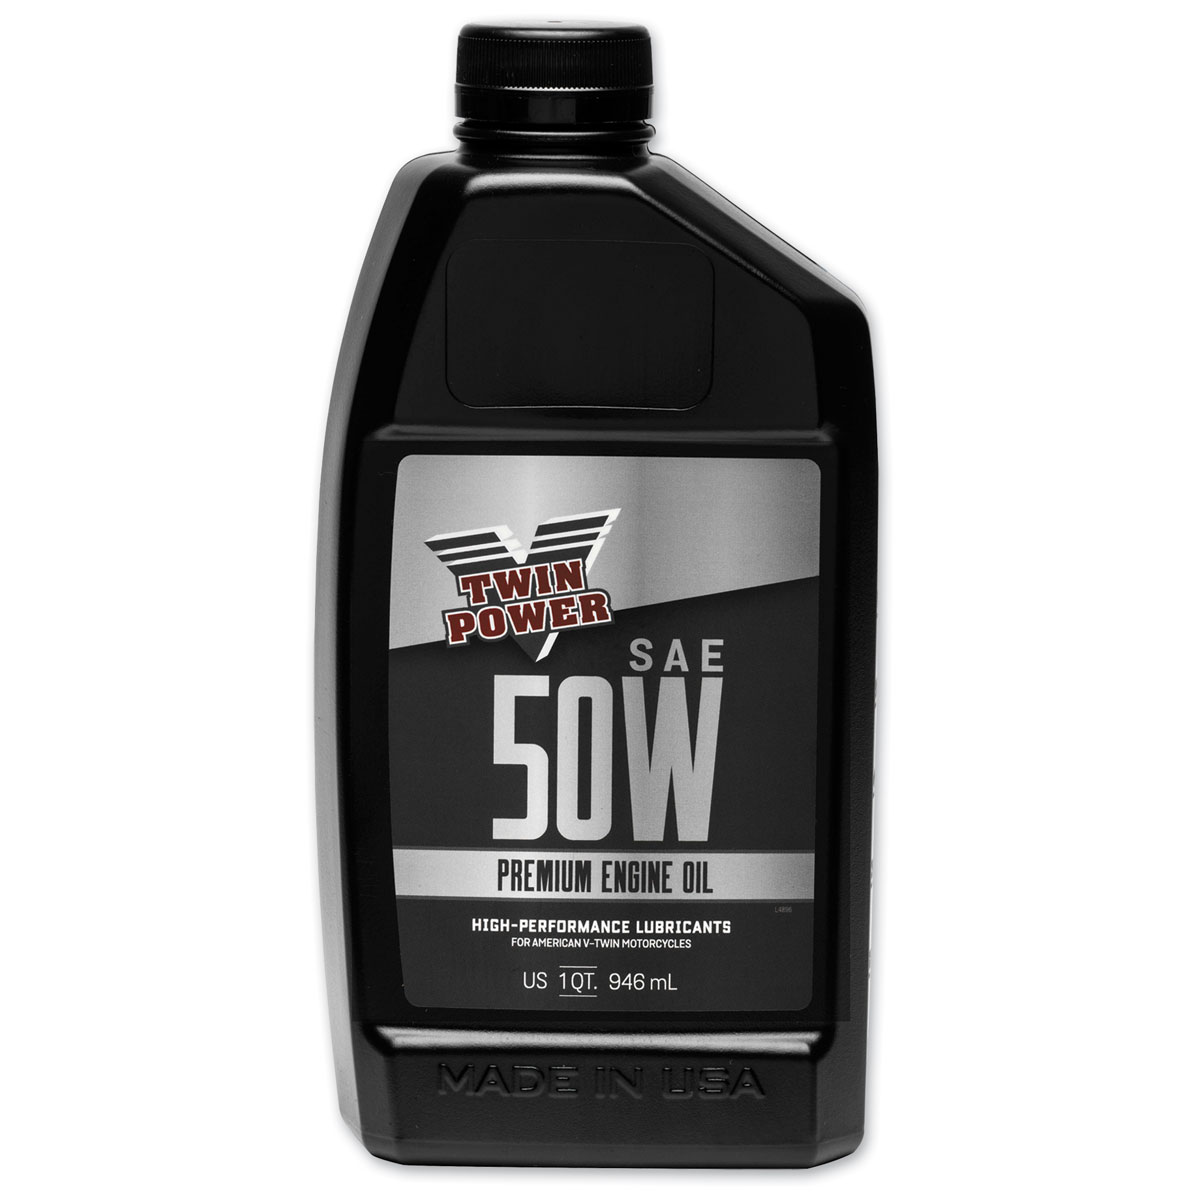 Twin Power Premium 50W Engine Oil Quart